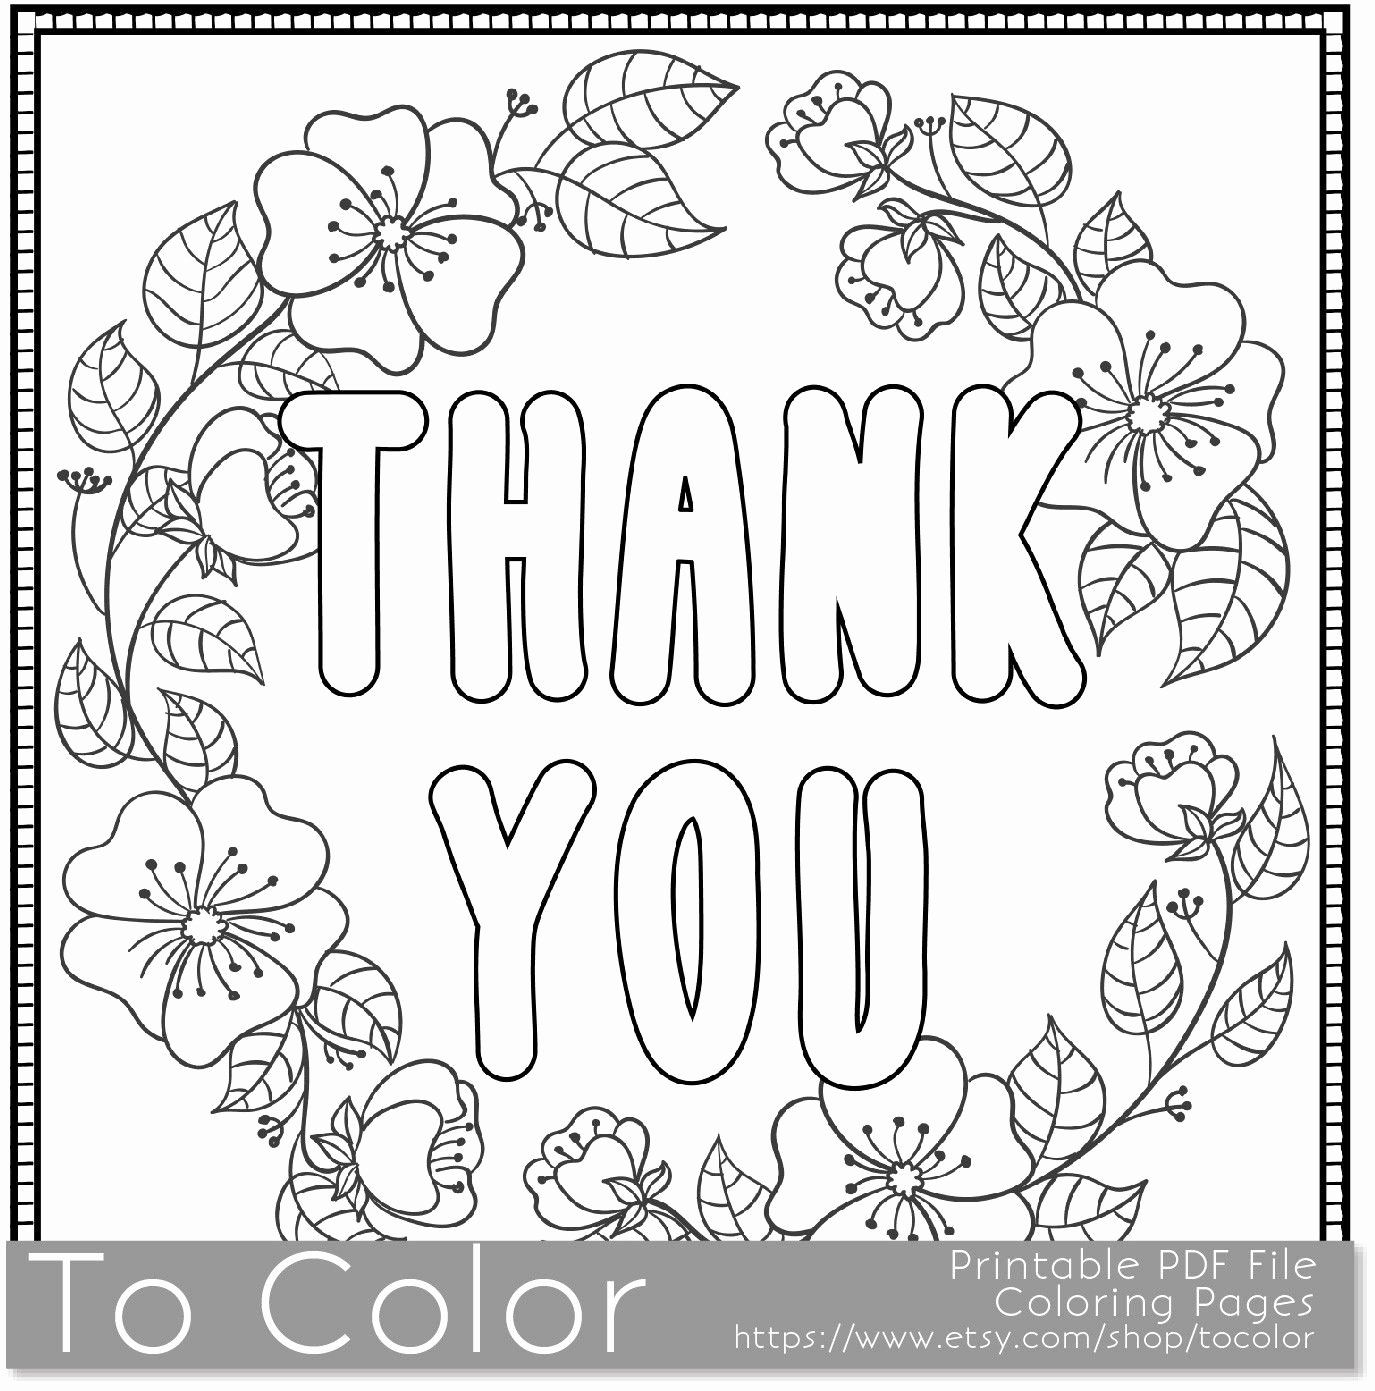 Flowers Coloring Pages Pdf Elegant Thank You Flowers Coloring Page